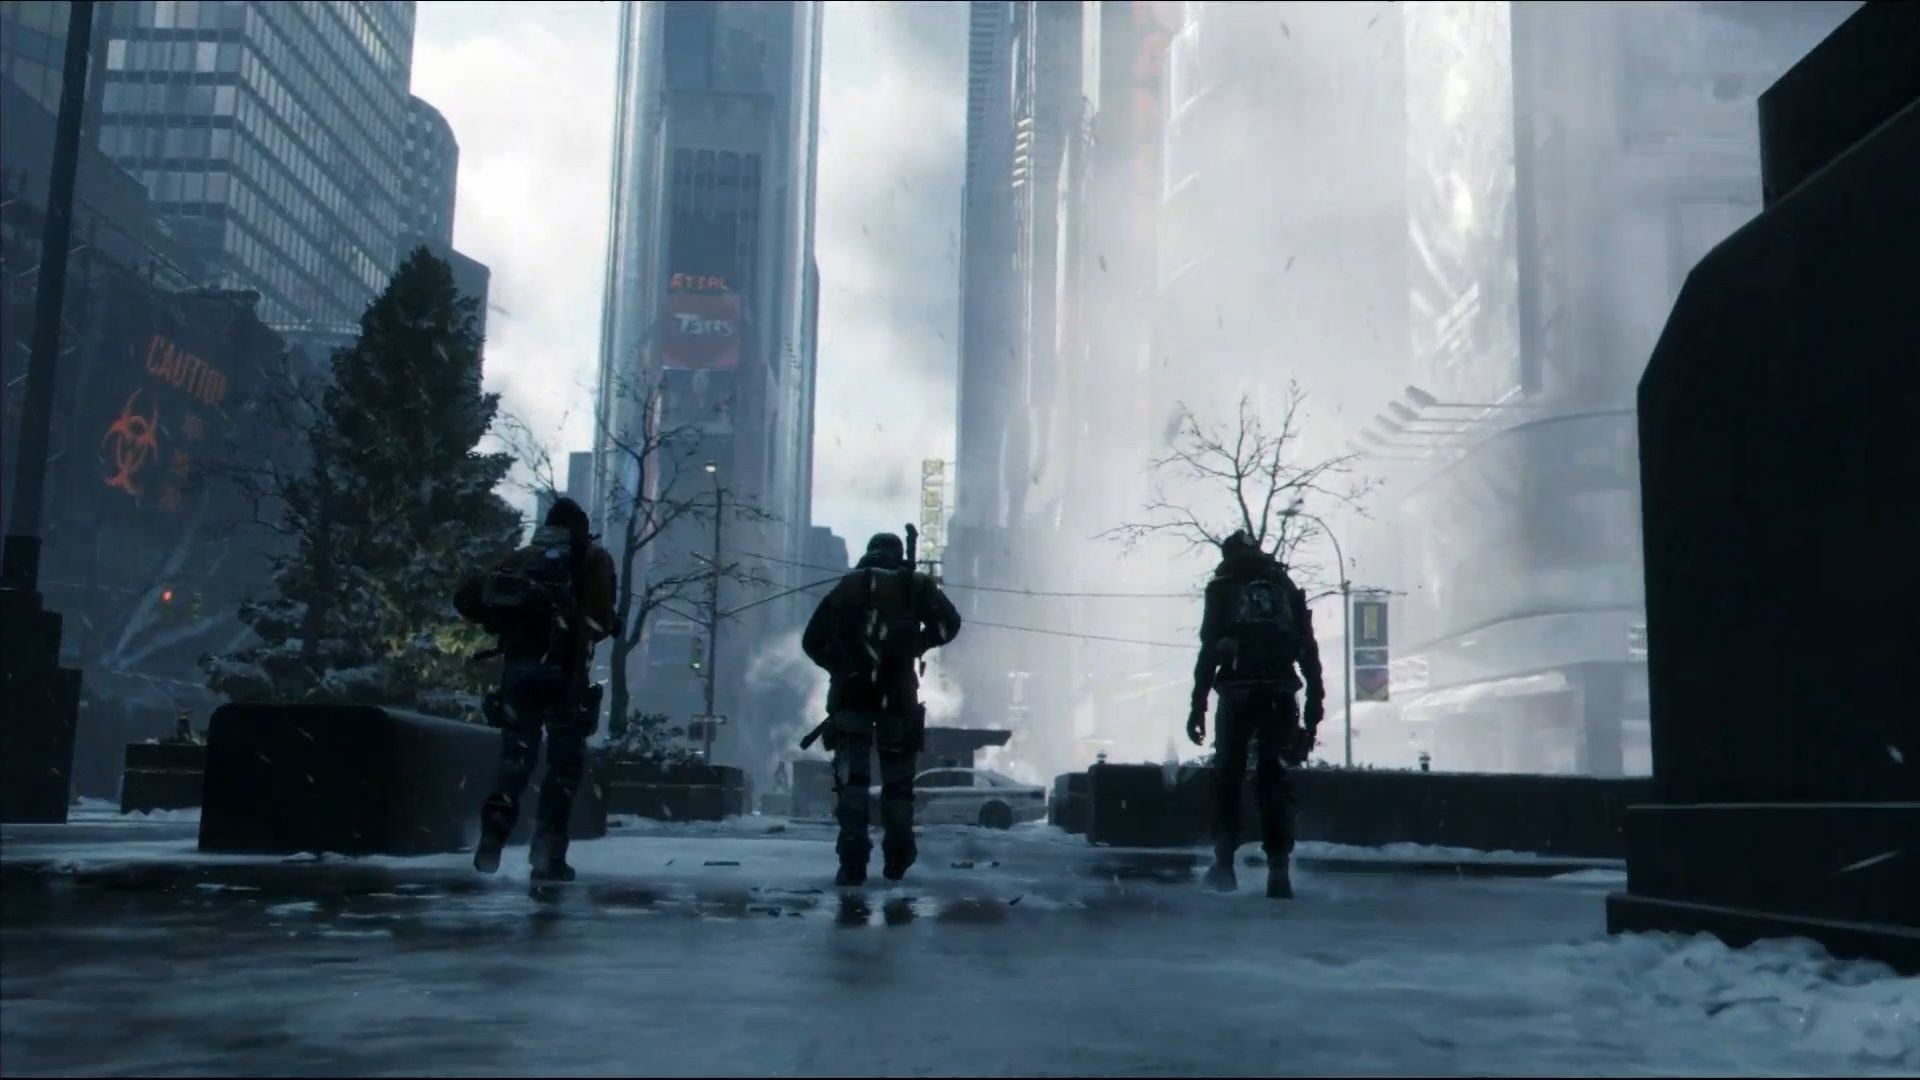 The Division Beta Has A Few Issues, But Ubisoft Are On It 4bb500f9f0ed6640b2f33b81c5a62fa4b4ef2338.jpg  1920x1080 q85 crop upscale